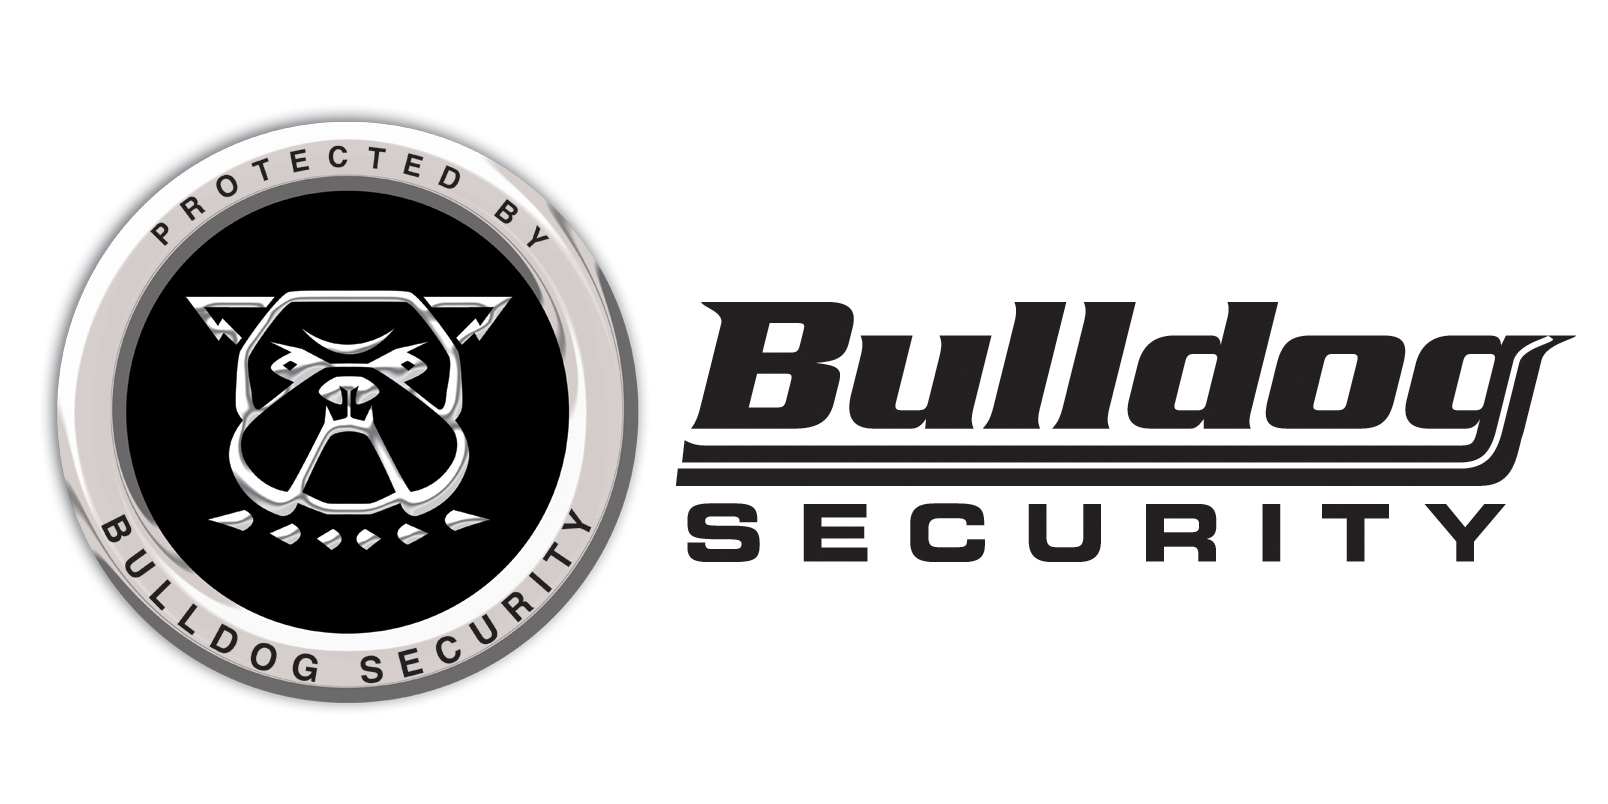 Bulldog Security